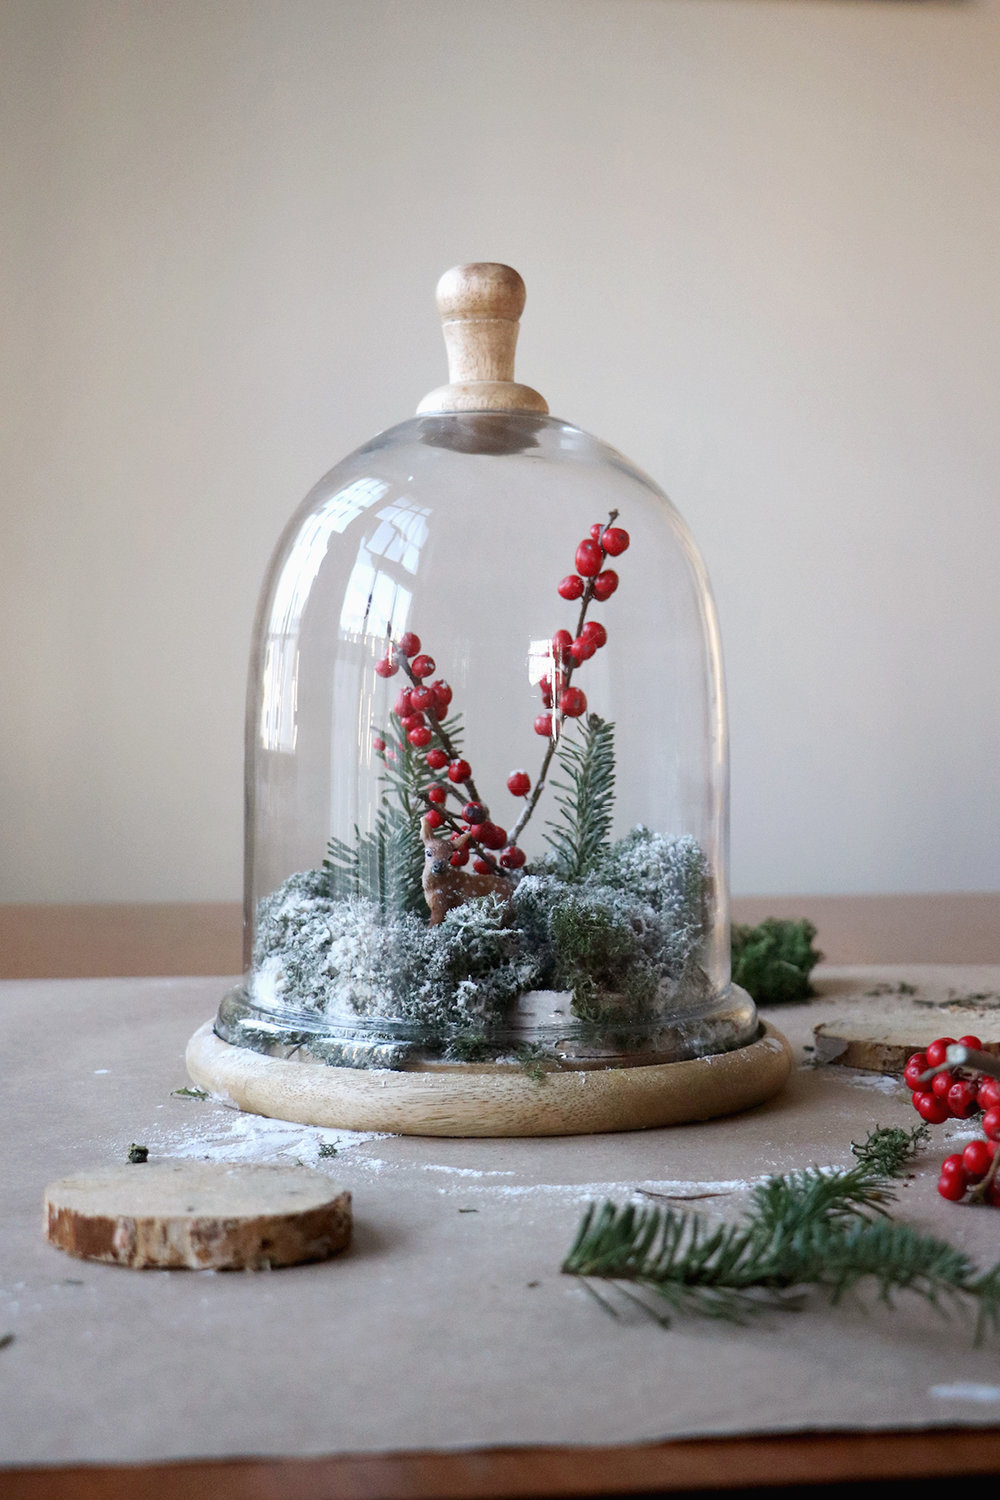 How to create a winter scene globe | root + dwell